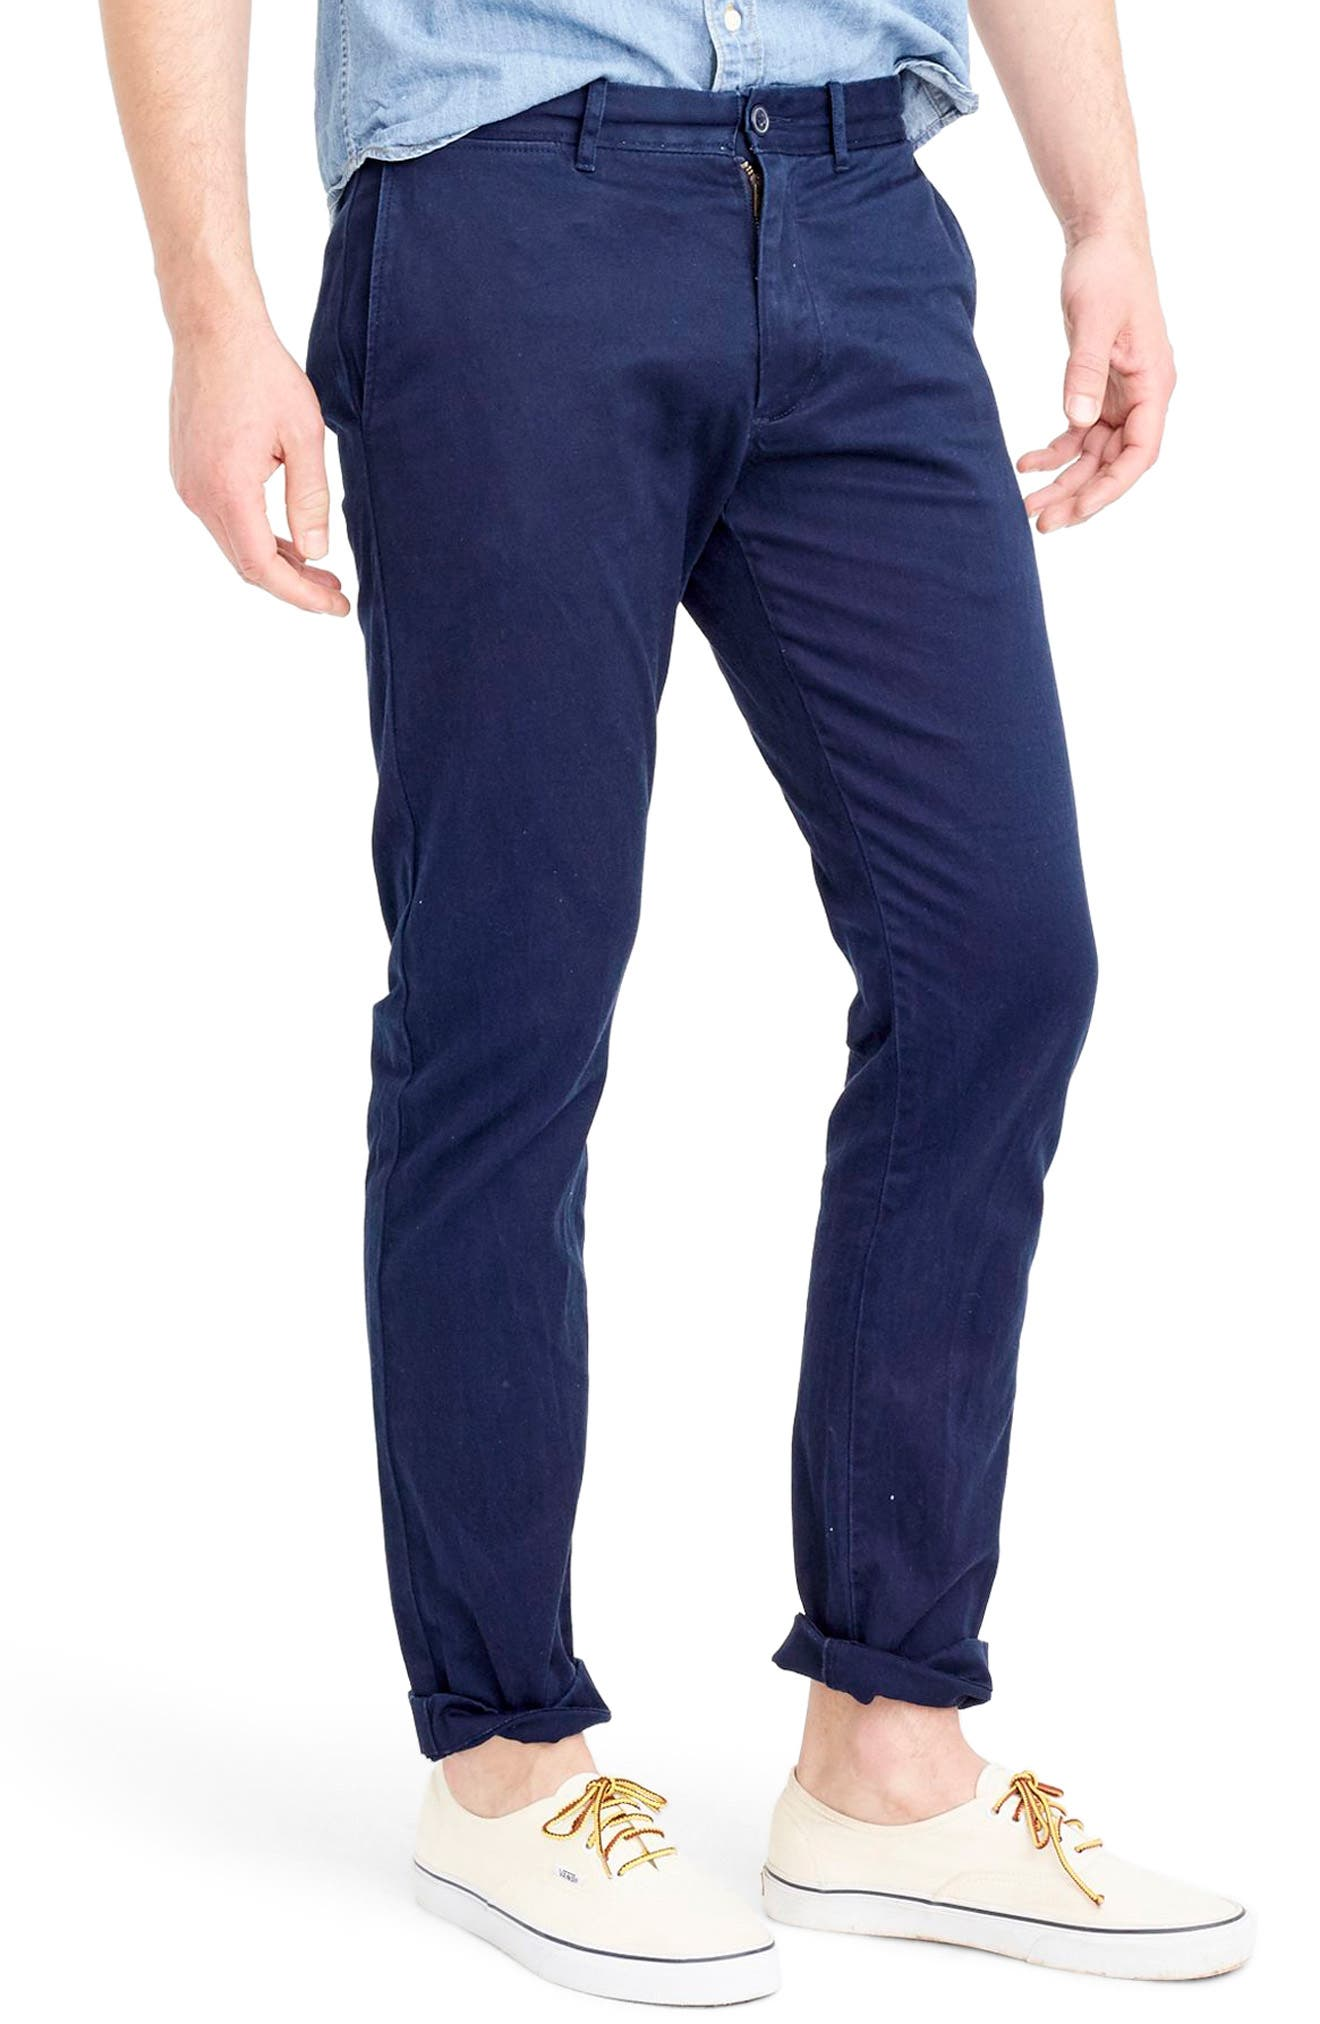 484 Slim Fit Stretch Chino Pants,                             Alternate thumbnail 31, color,